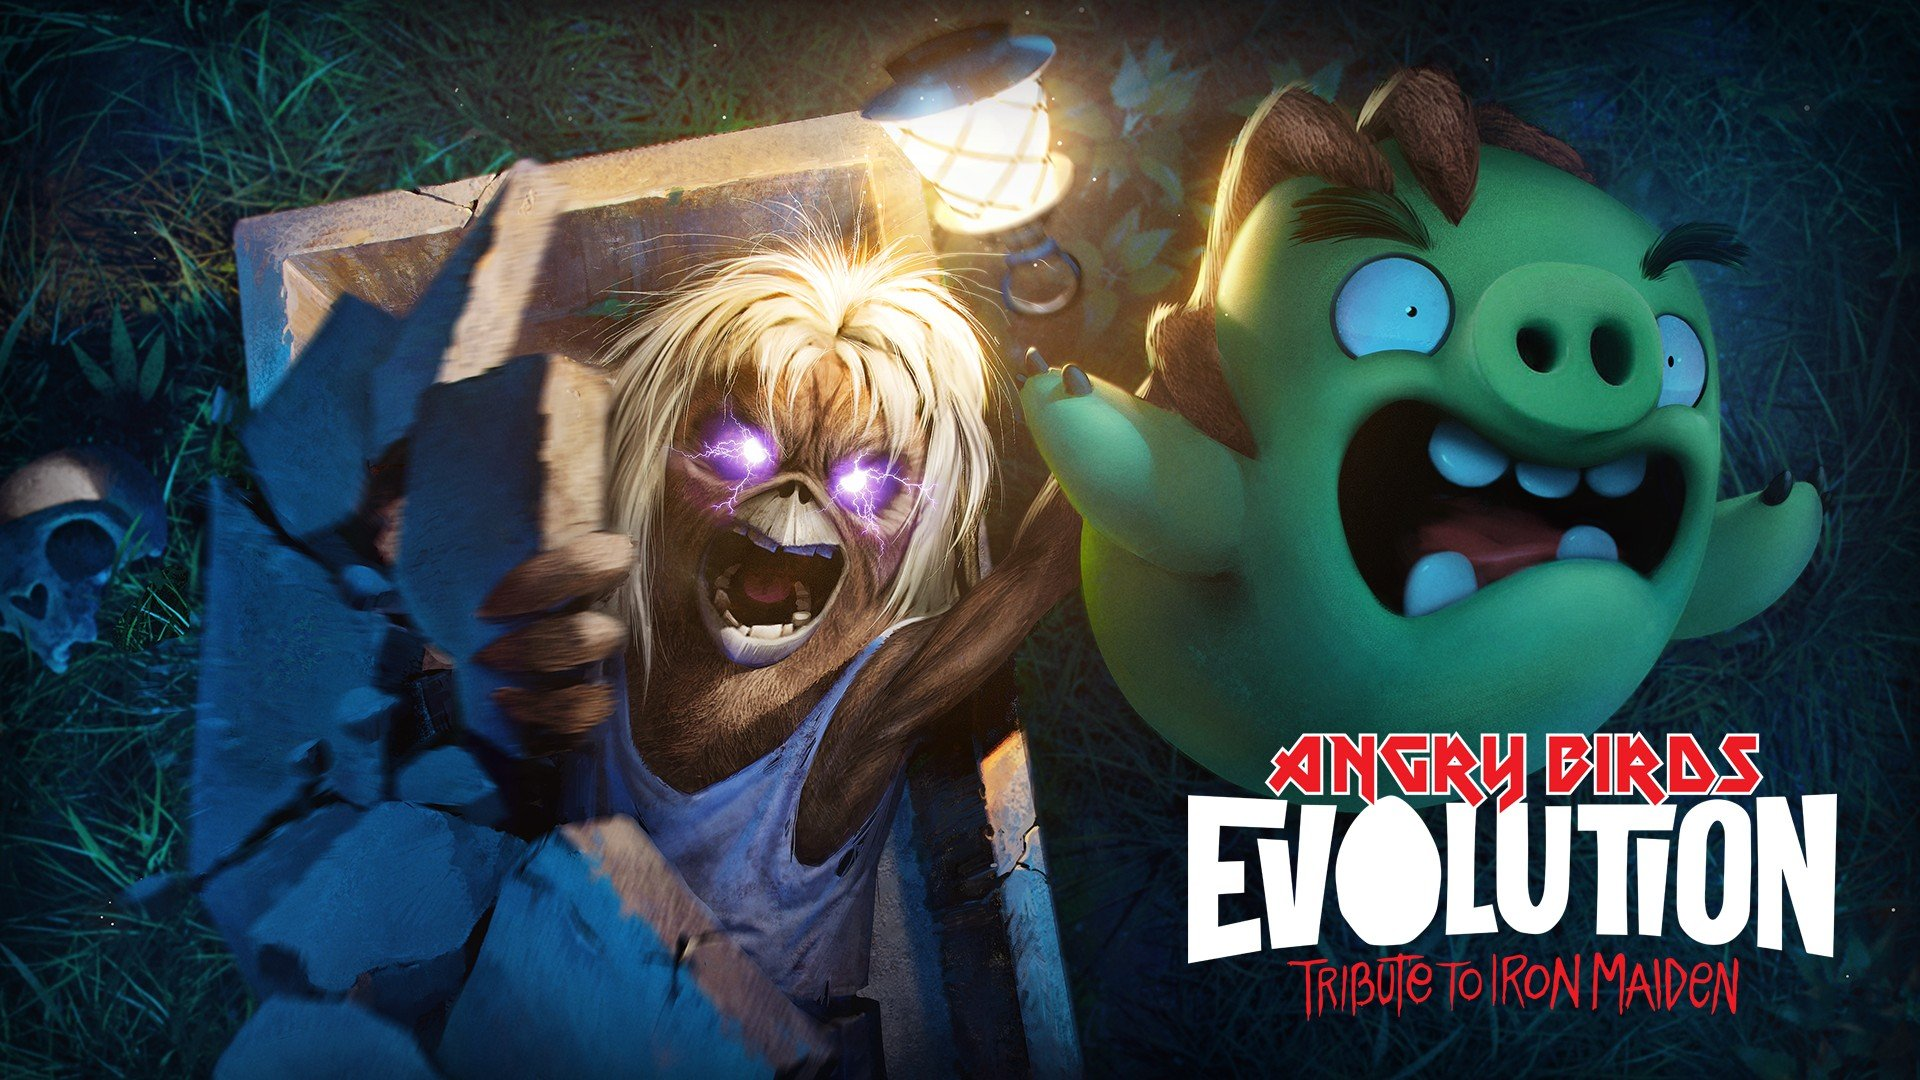 Modojo | Angry Birds And Iron Maiden Collide In Angry Birds Evolution Halloween Mashup